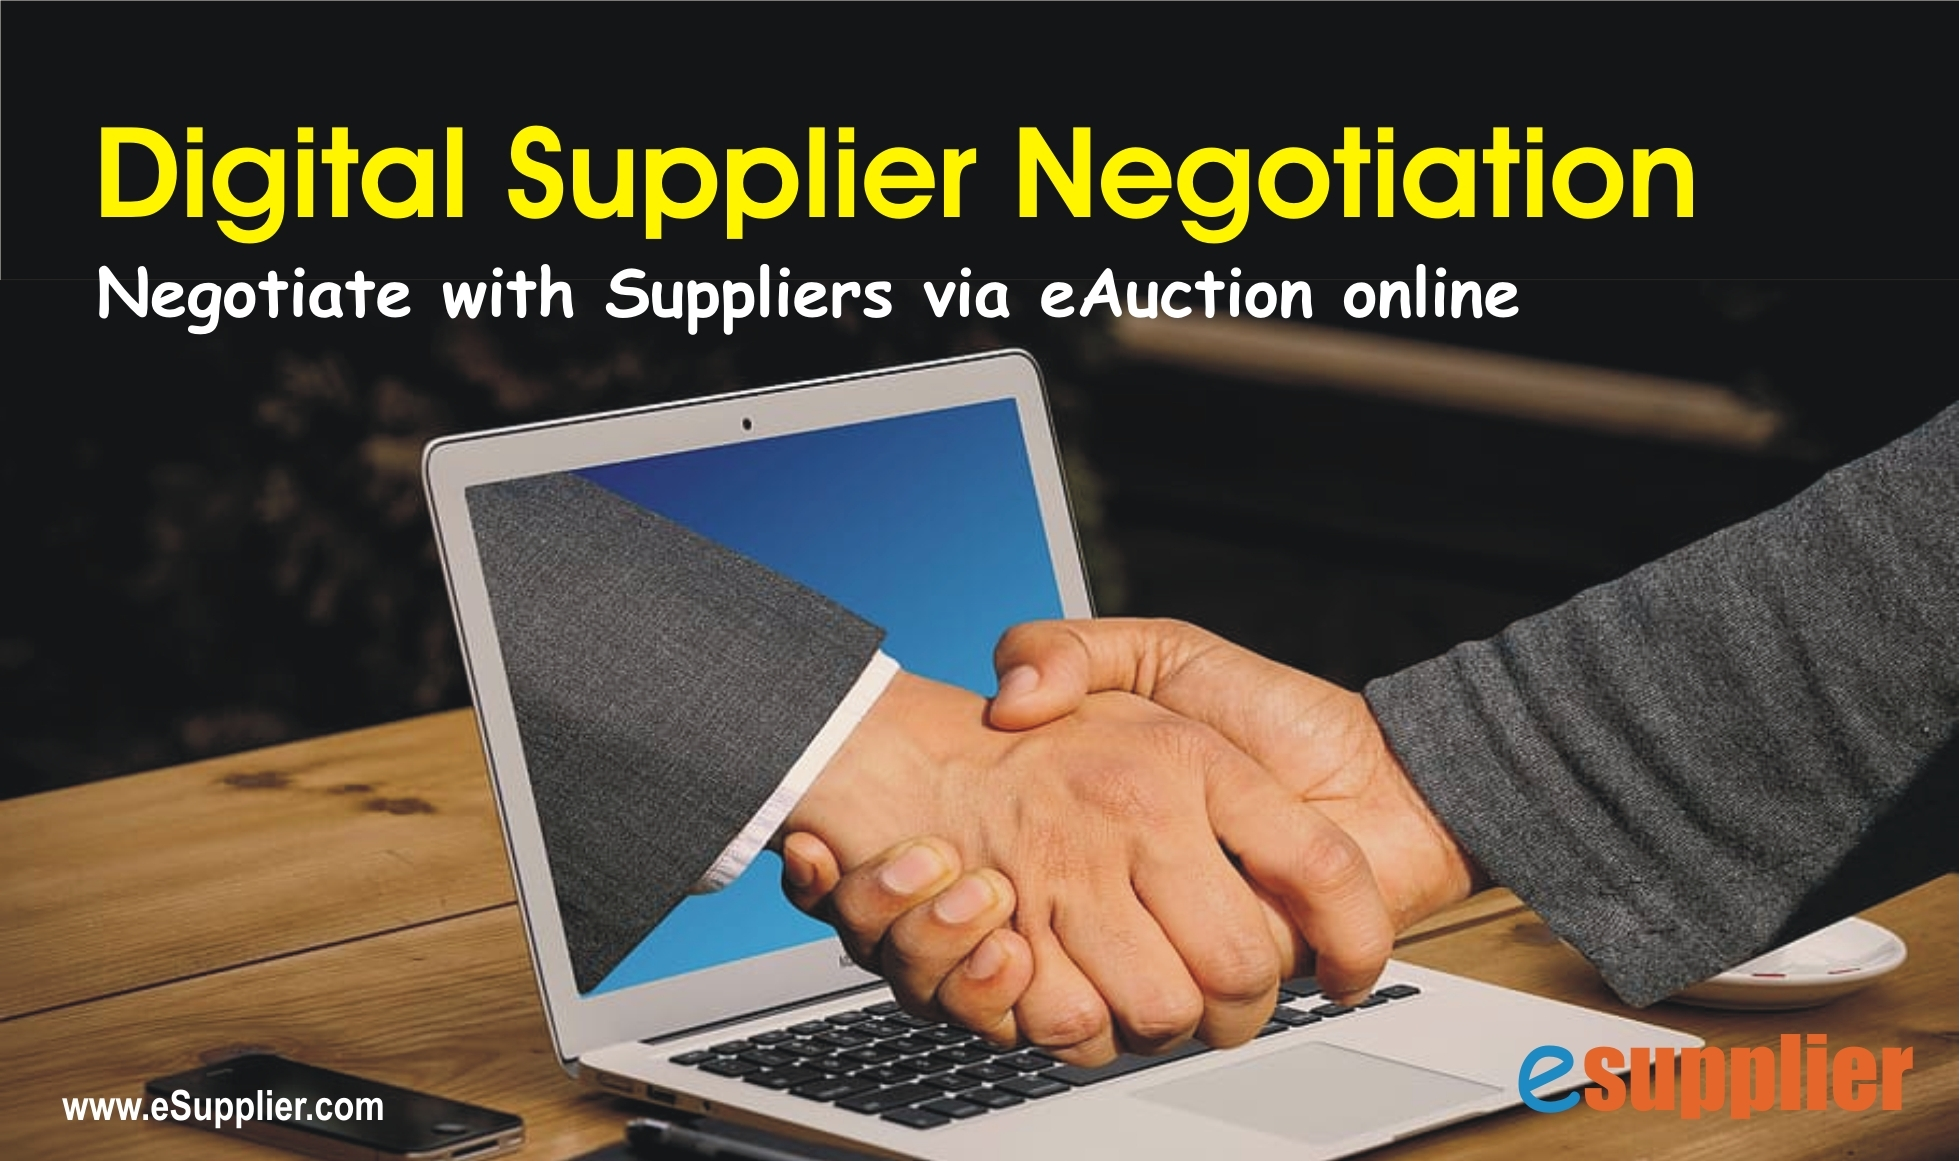 How Supplier Negotiation works during Panademic